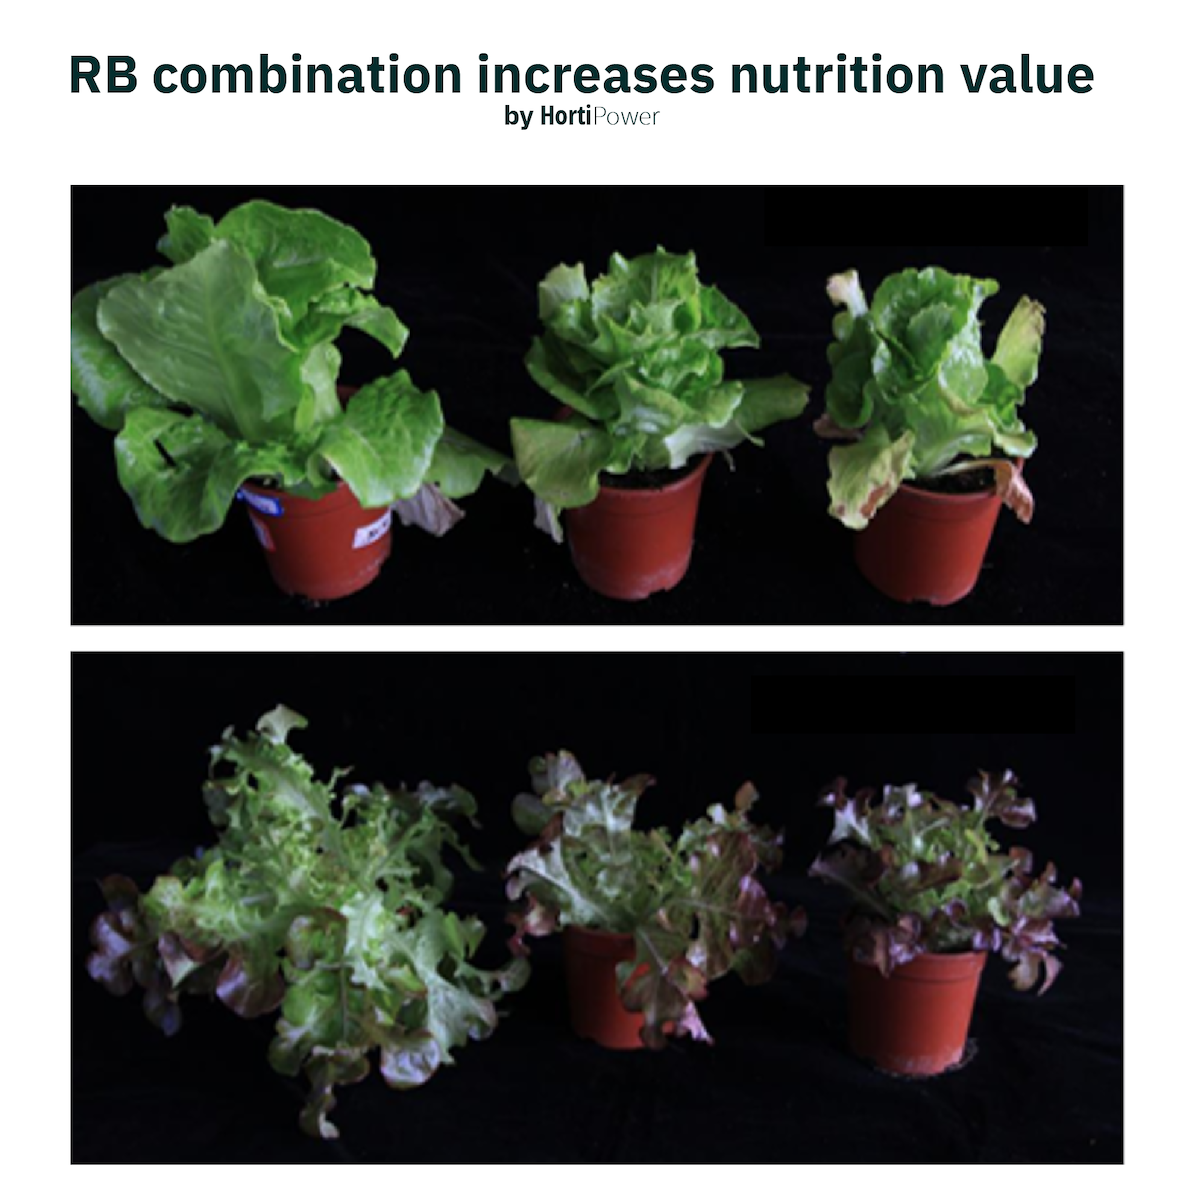 light can increase nutrition in lettuce